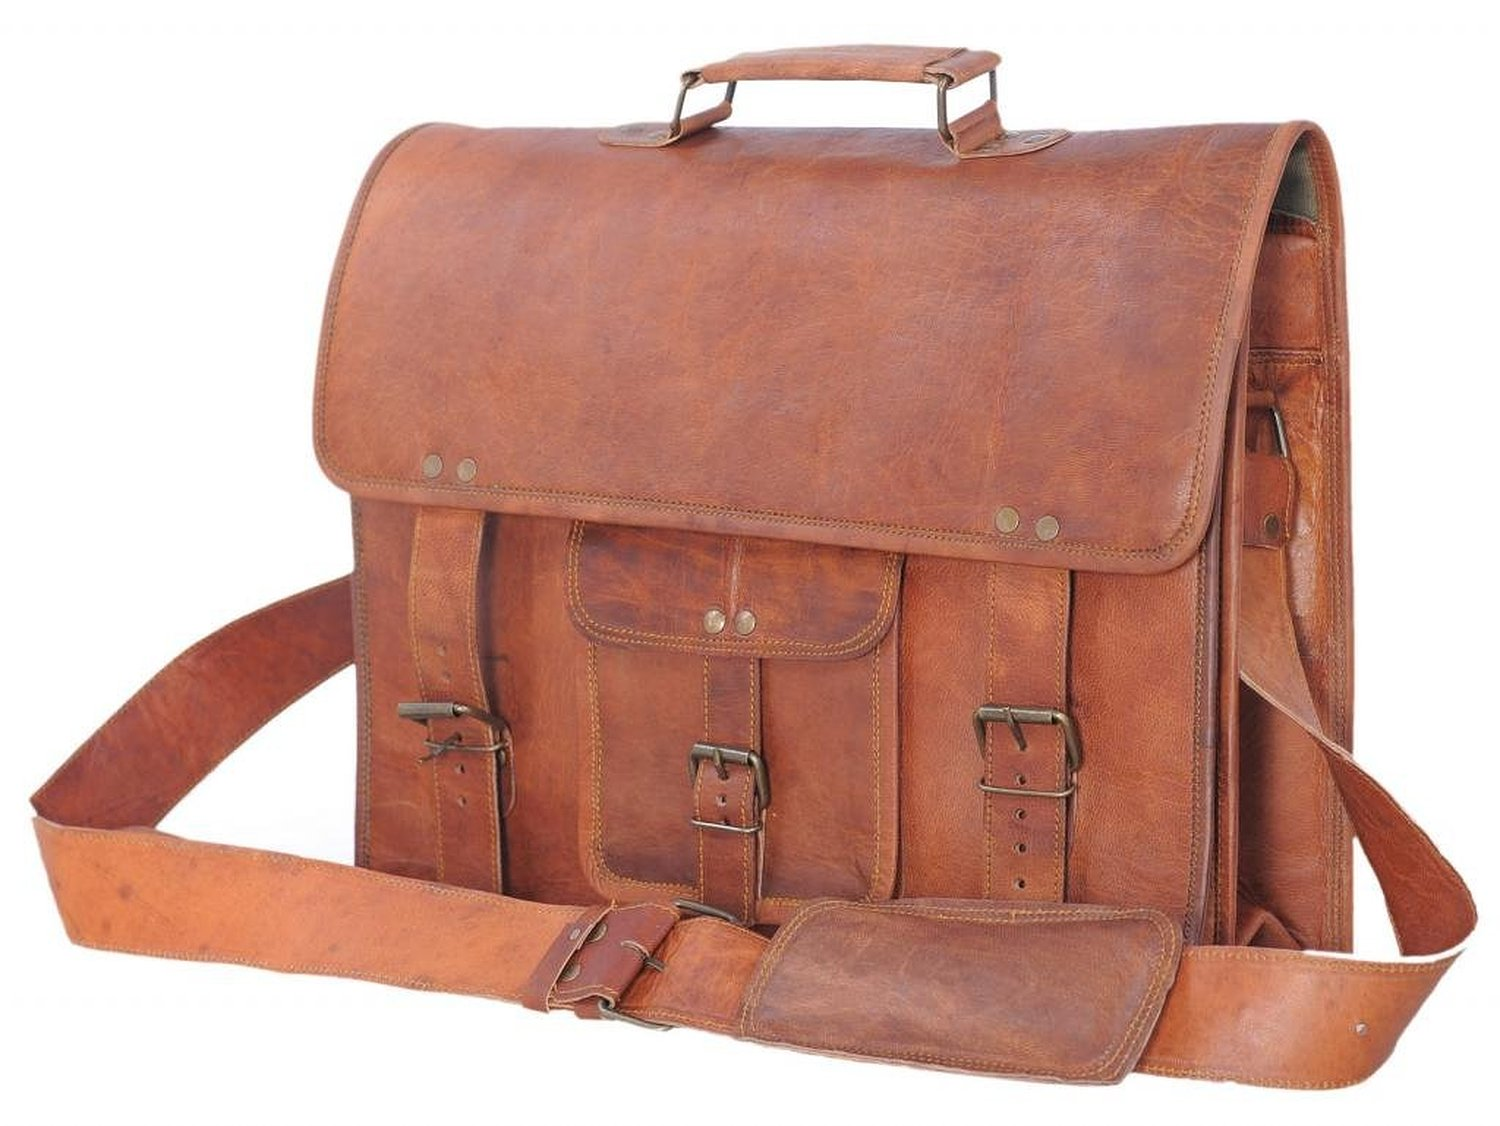 Passion Leather 16 Inch Vintage Look Leather Laptop Messenger Briefcase Satchel Bag: Luggage & Travel Gear: Amazon.com